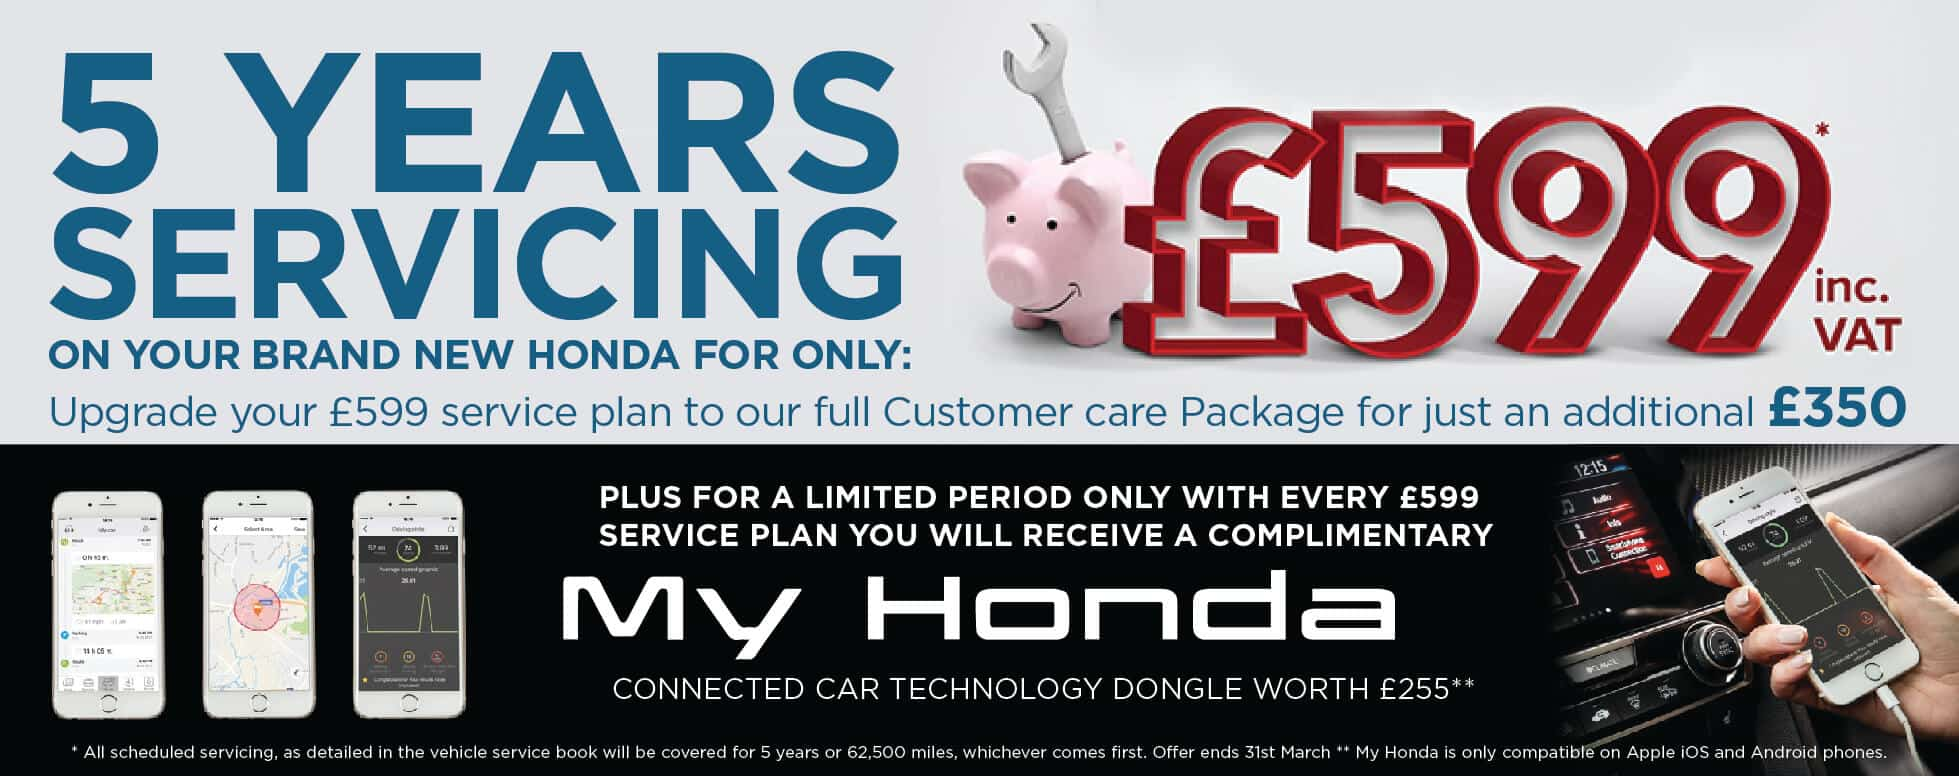 Honda 5 Years Servicing offer